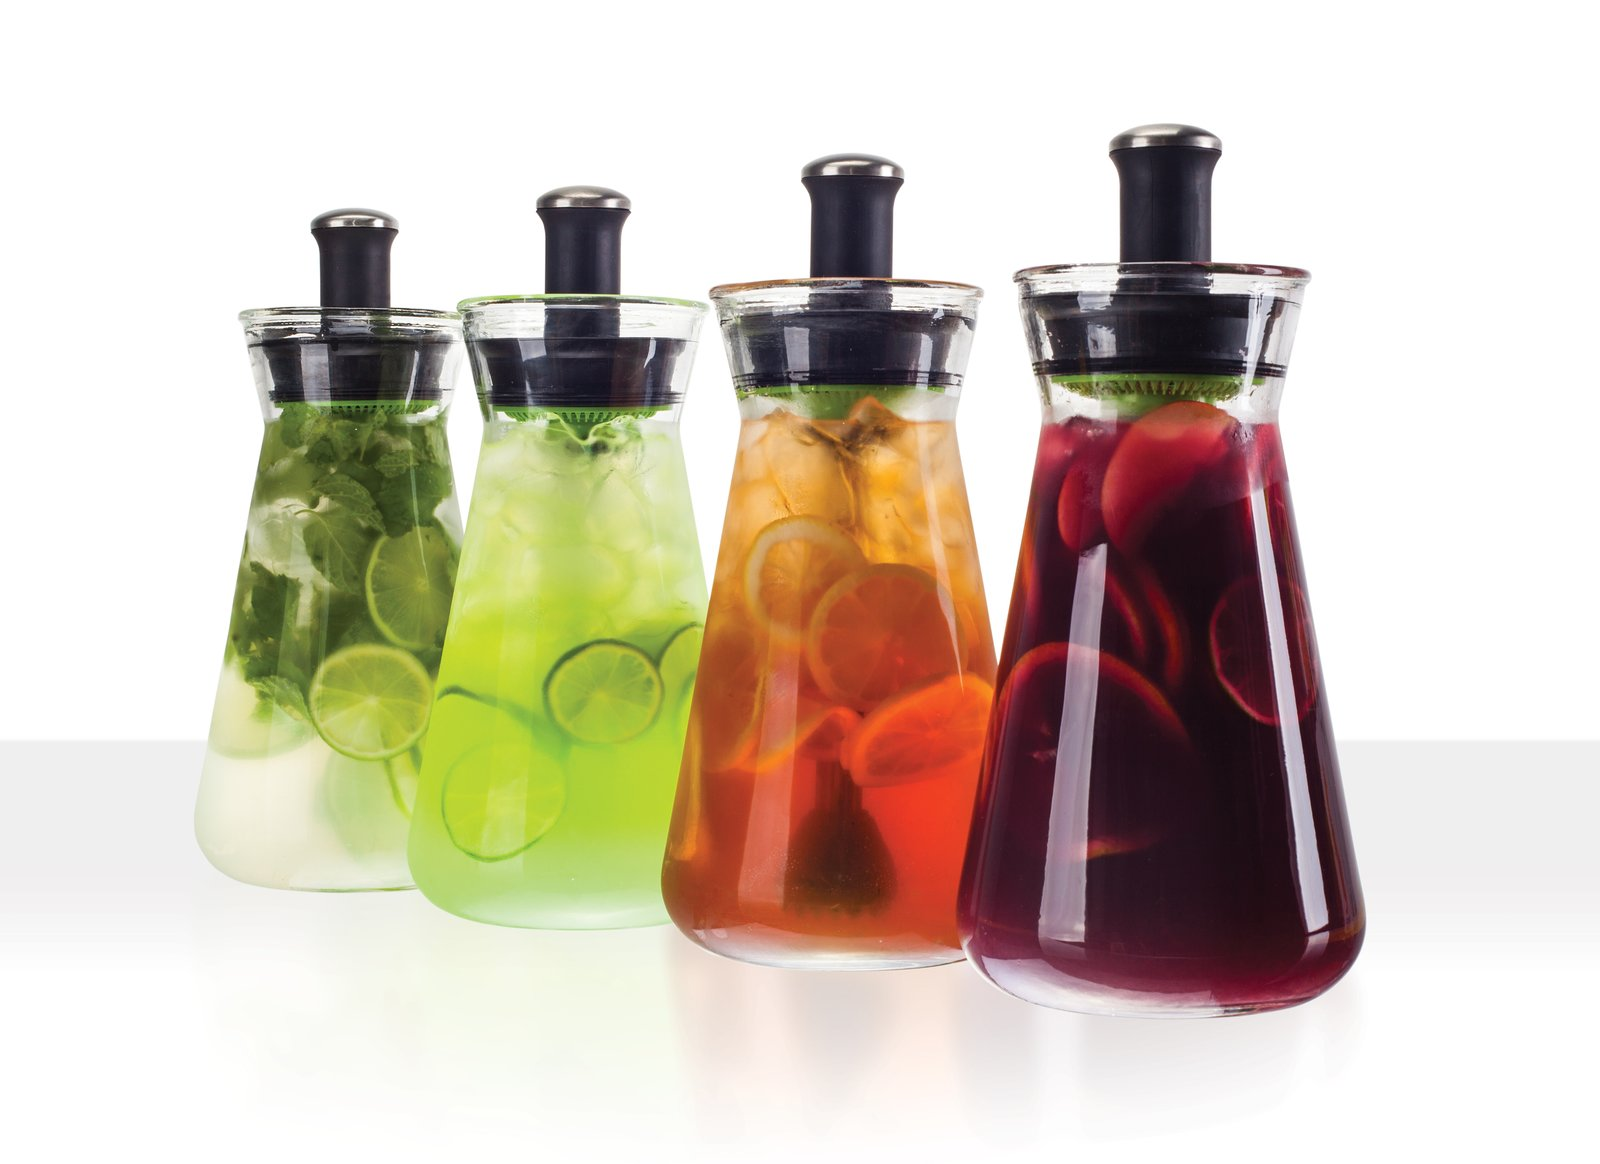 The Z54 carafe is a fresh and healthy alternative to HFCS soft drinks.  Muddle, mix and serve from the 54 oz glass carafe. Pulls after-hours duty on mojitos, sangria and margaritas.  zinganything.com  Brands to admire from Studio Murmur